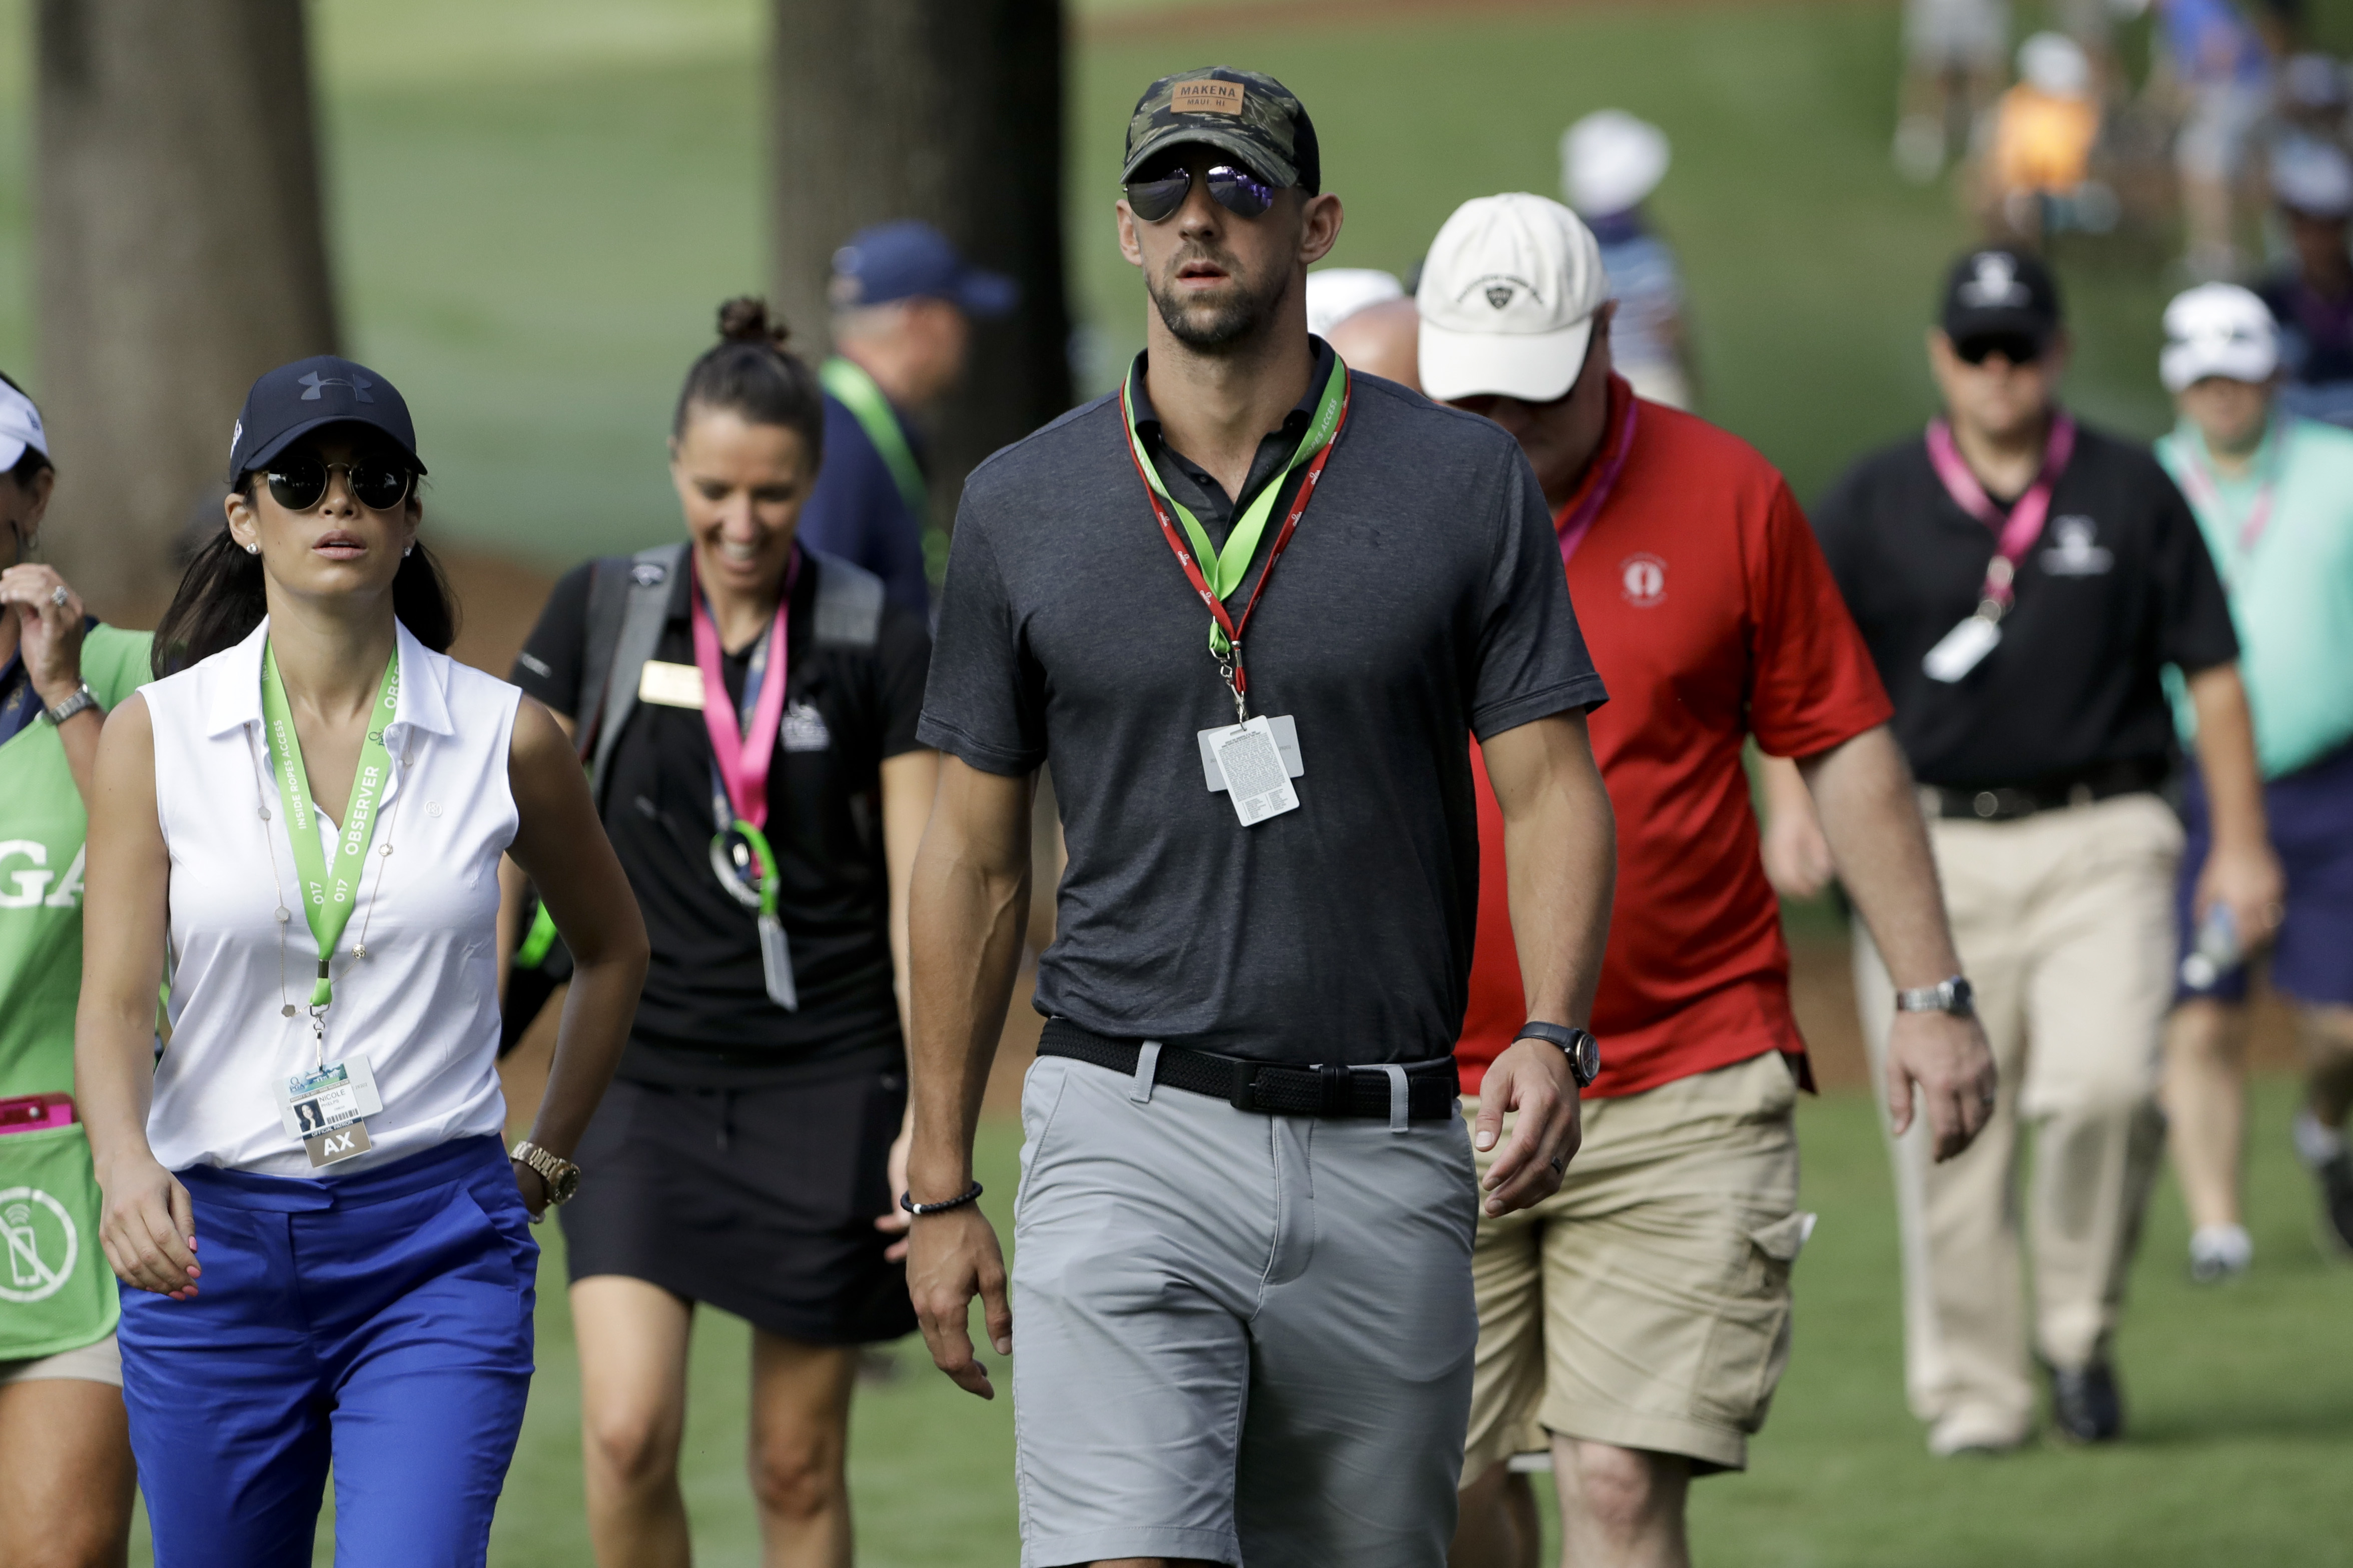 Swimmer, Michael Phelps walks the back ninth during the first round of the PGA Championship golf tournament at the Quail Hollow Club Thursday, Aug. 10, 2017, in Charlotte, N.C. (AP Photo/Chris O'Meara)